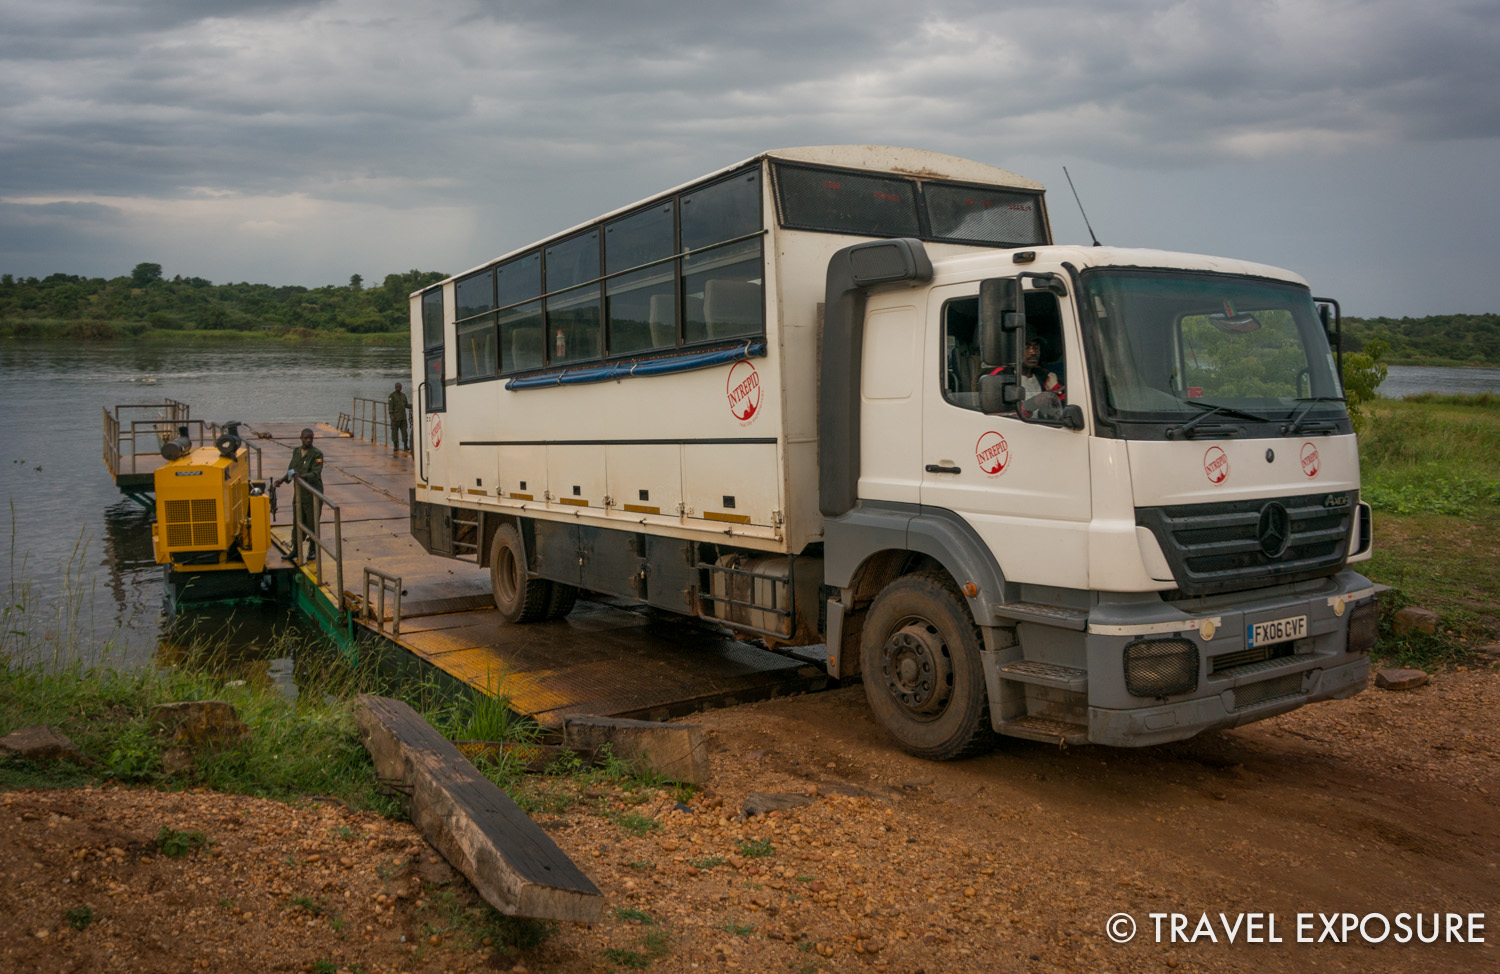 Our overland truck crossing the Nile.